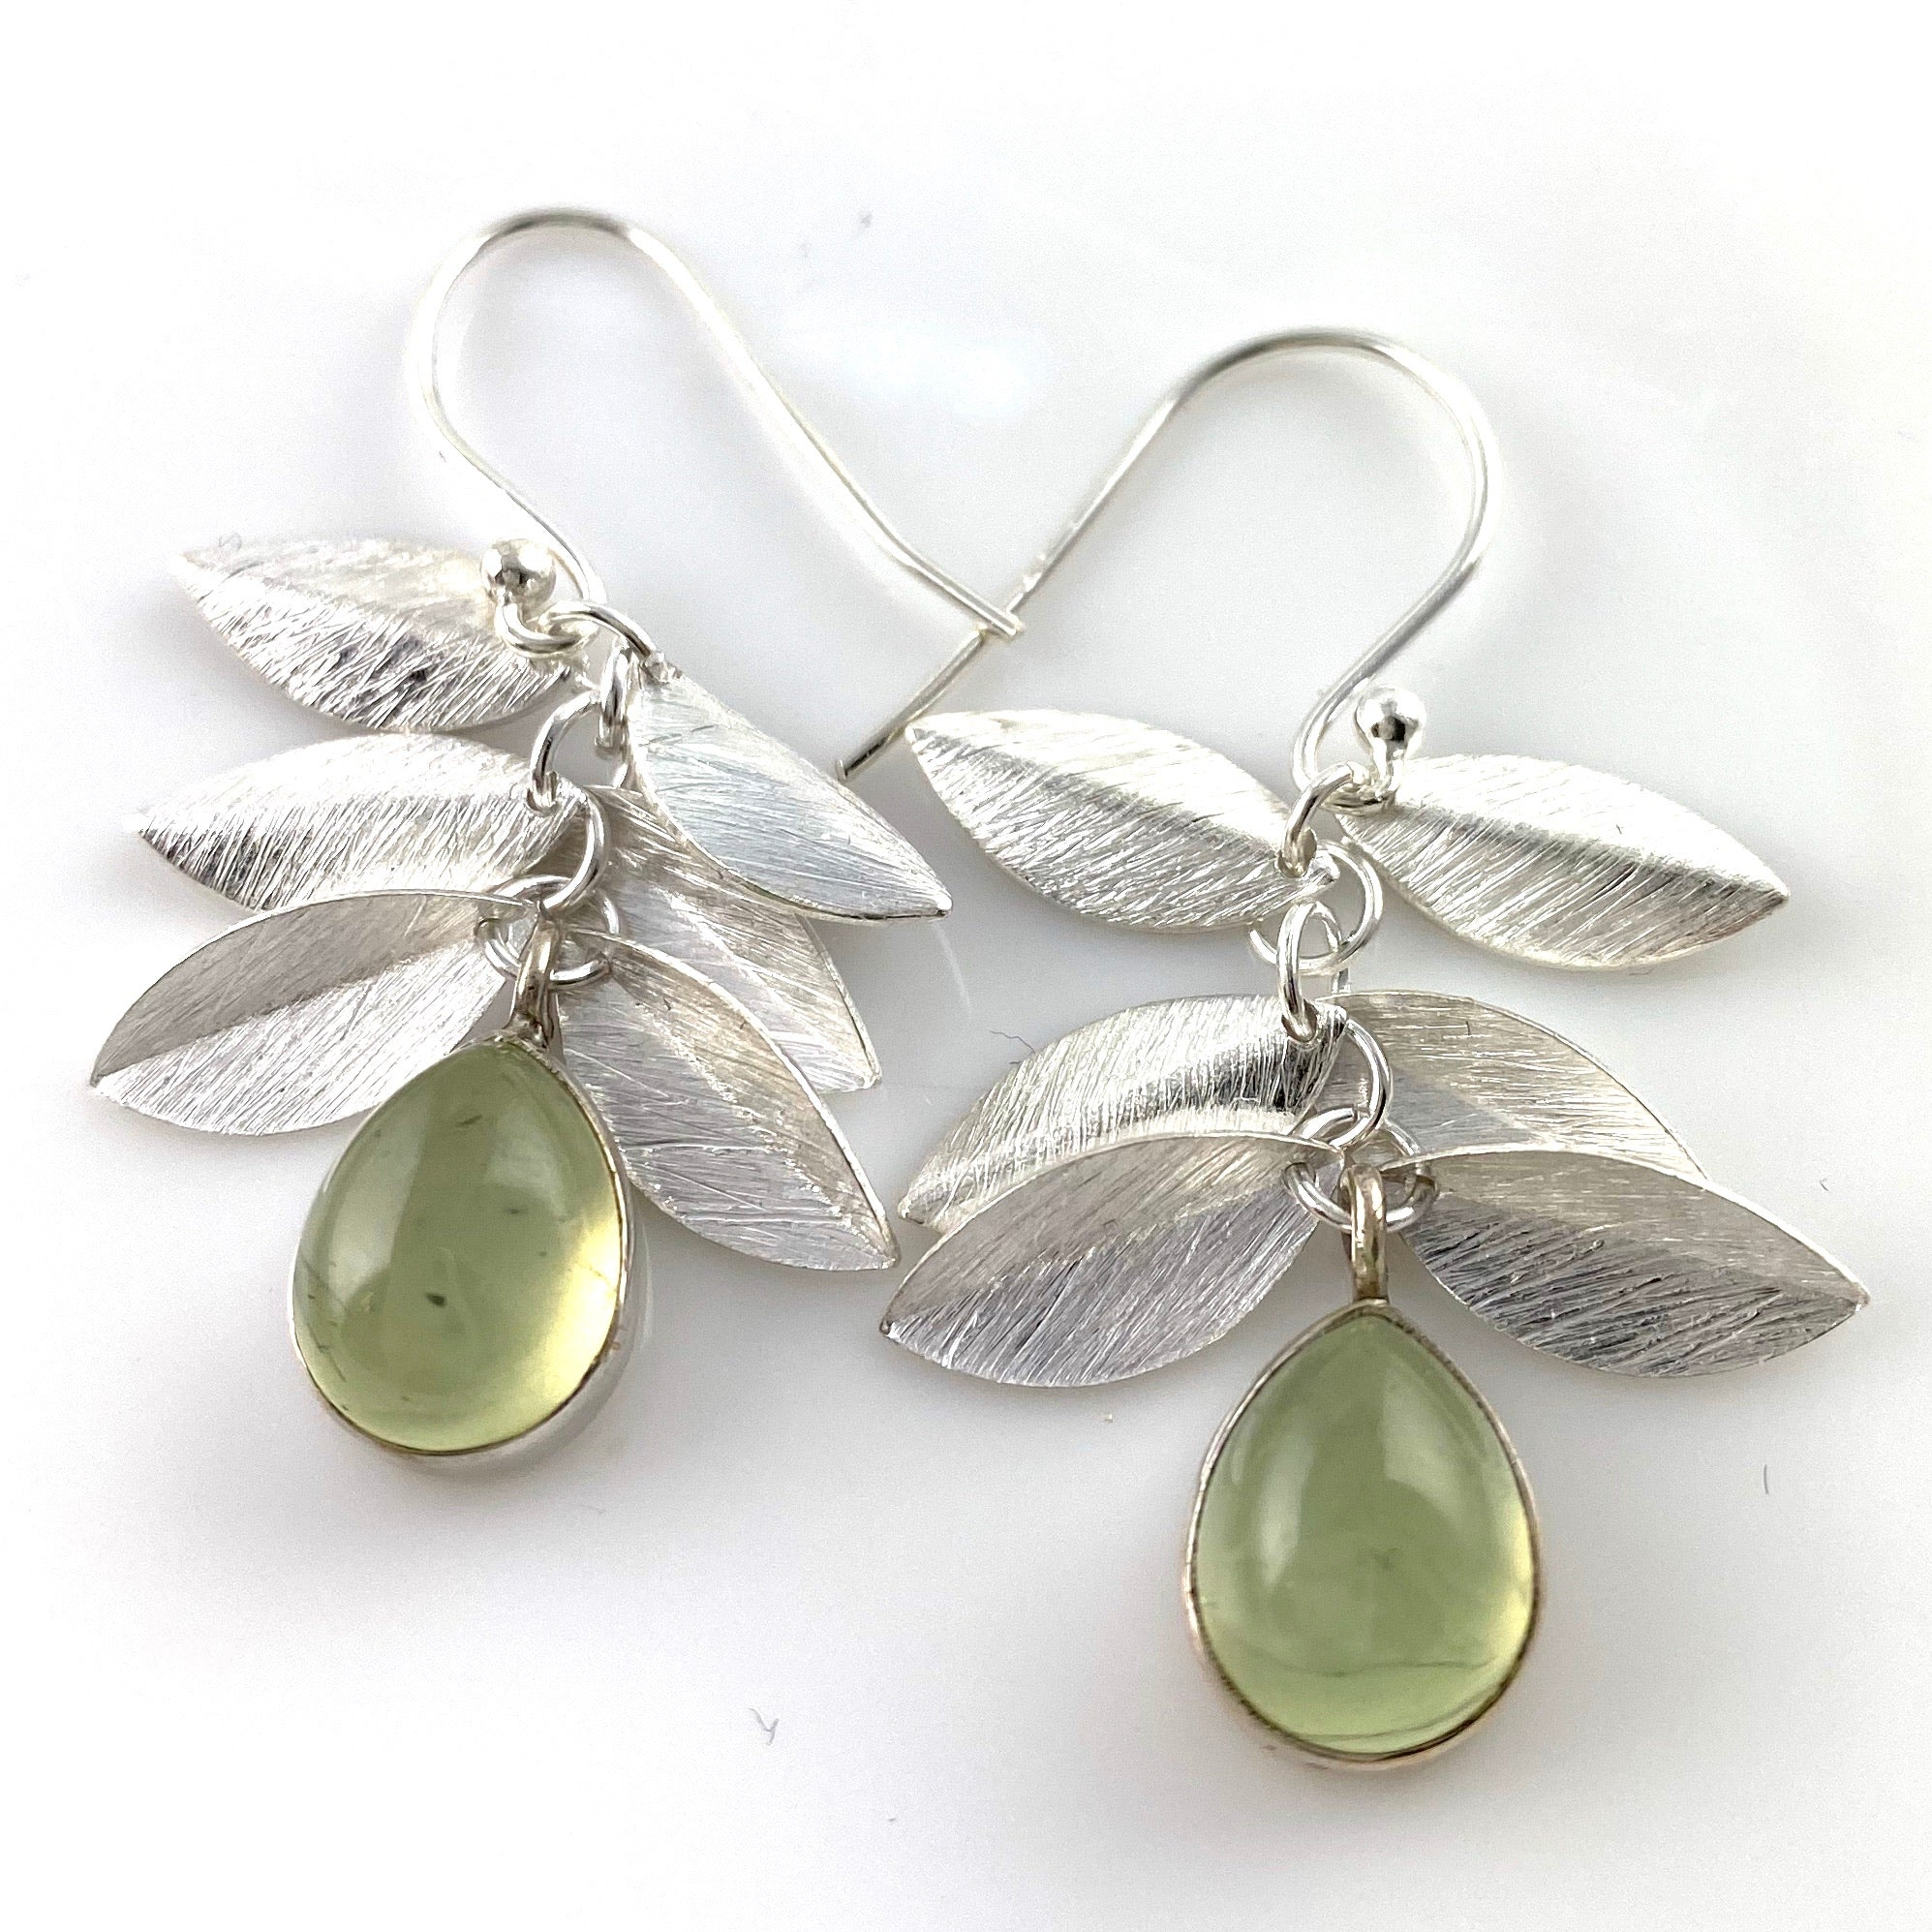 Prehnite Leaf Sterling Silver Earrings - Keja Designs Jewelry